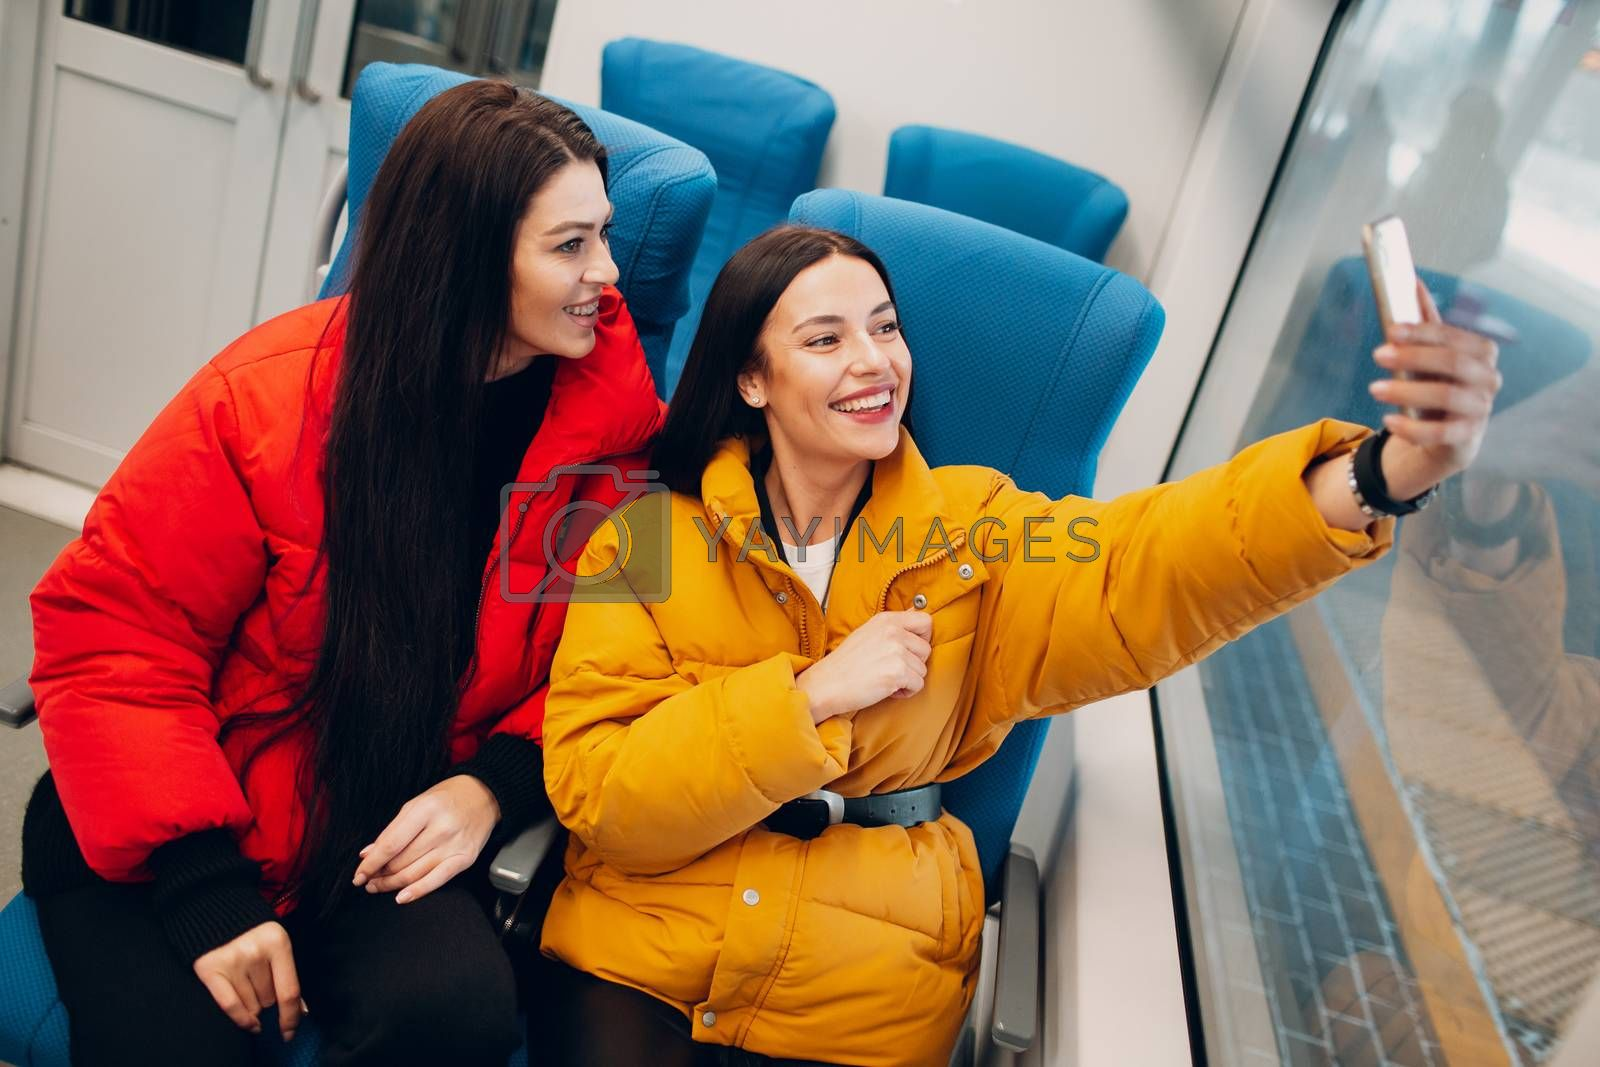 Two young women take a selfy shot with mobile phone in train